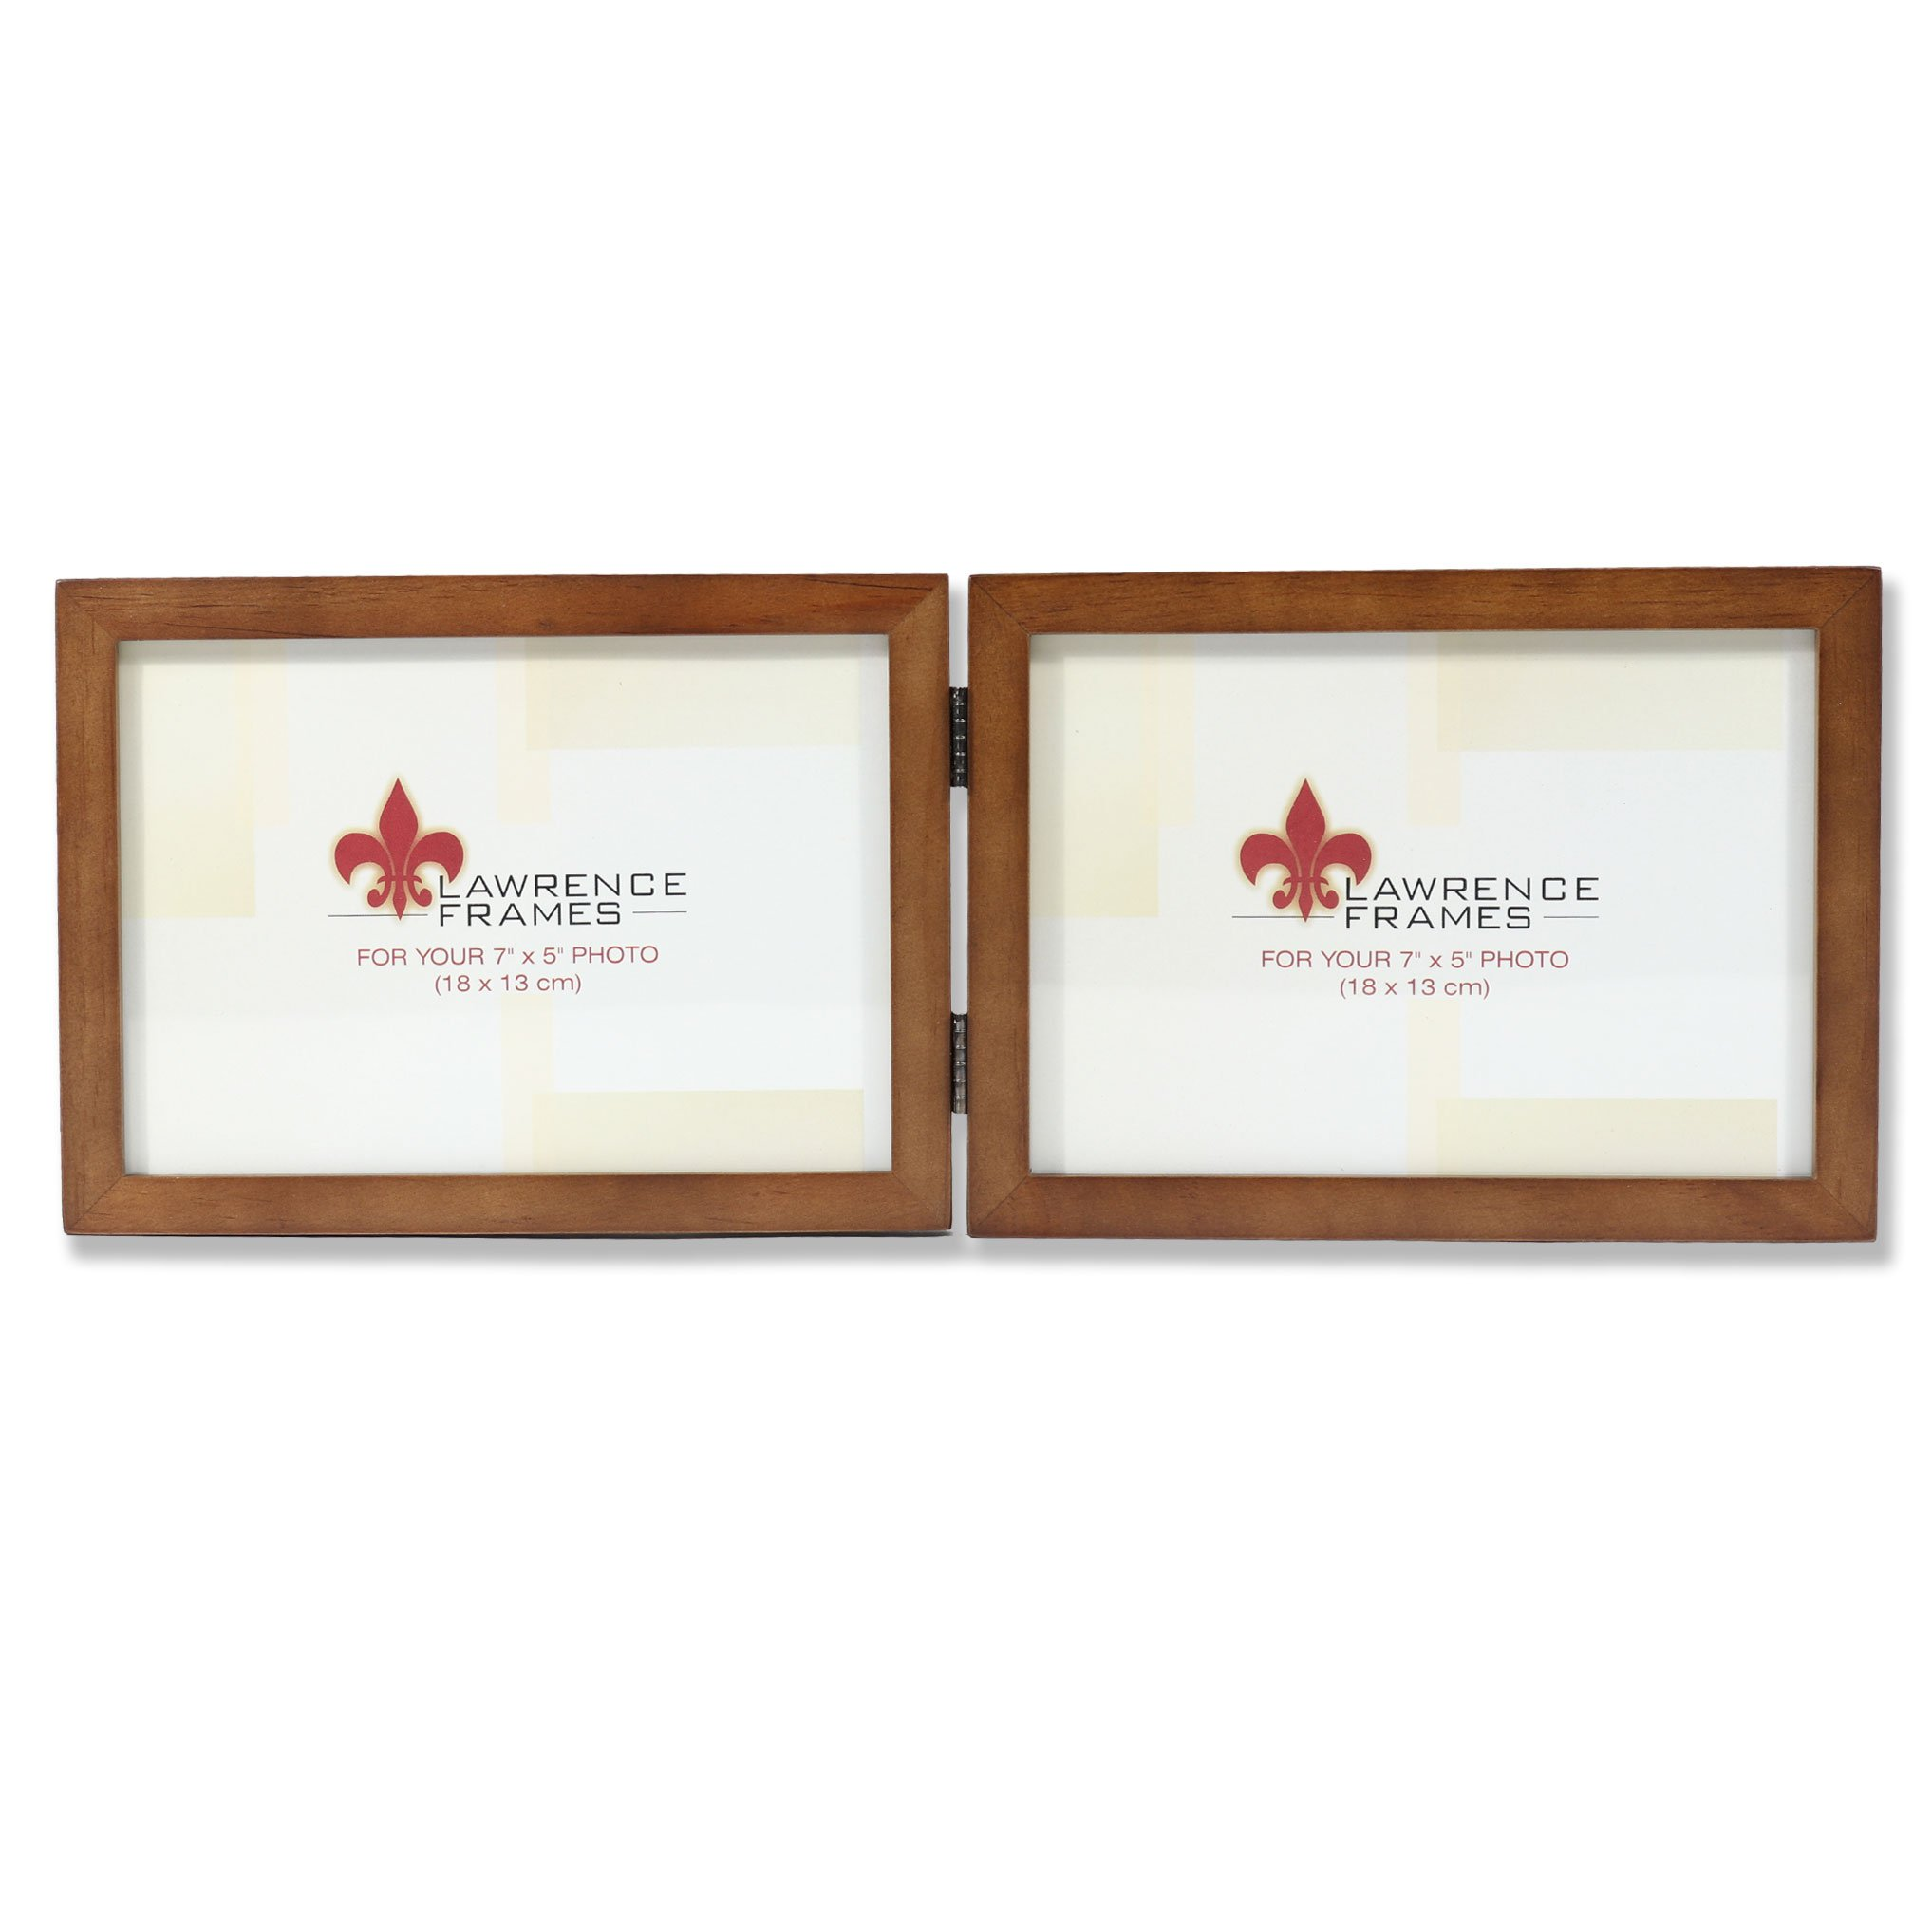 Lawrence Frames 766075D Nutmeg Wood Hinged Double Picture Frame, 7 by 5-Inch